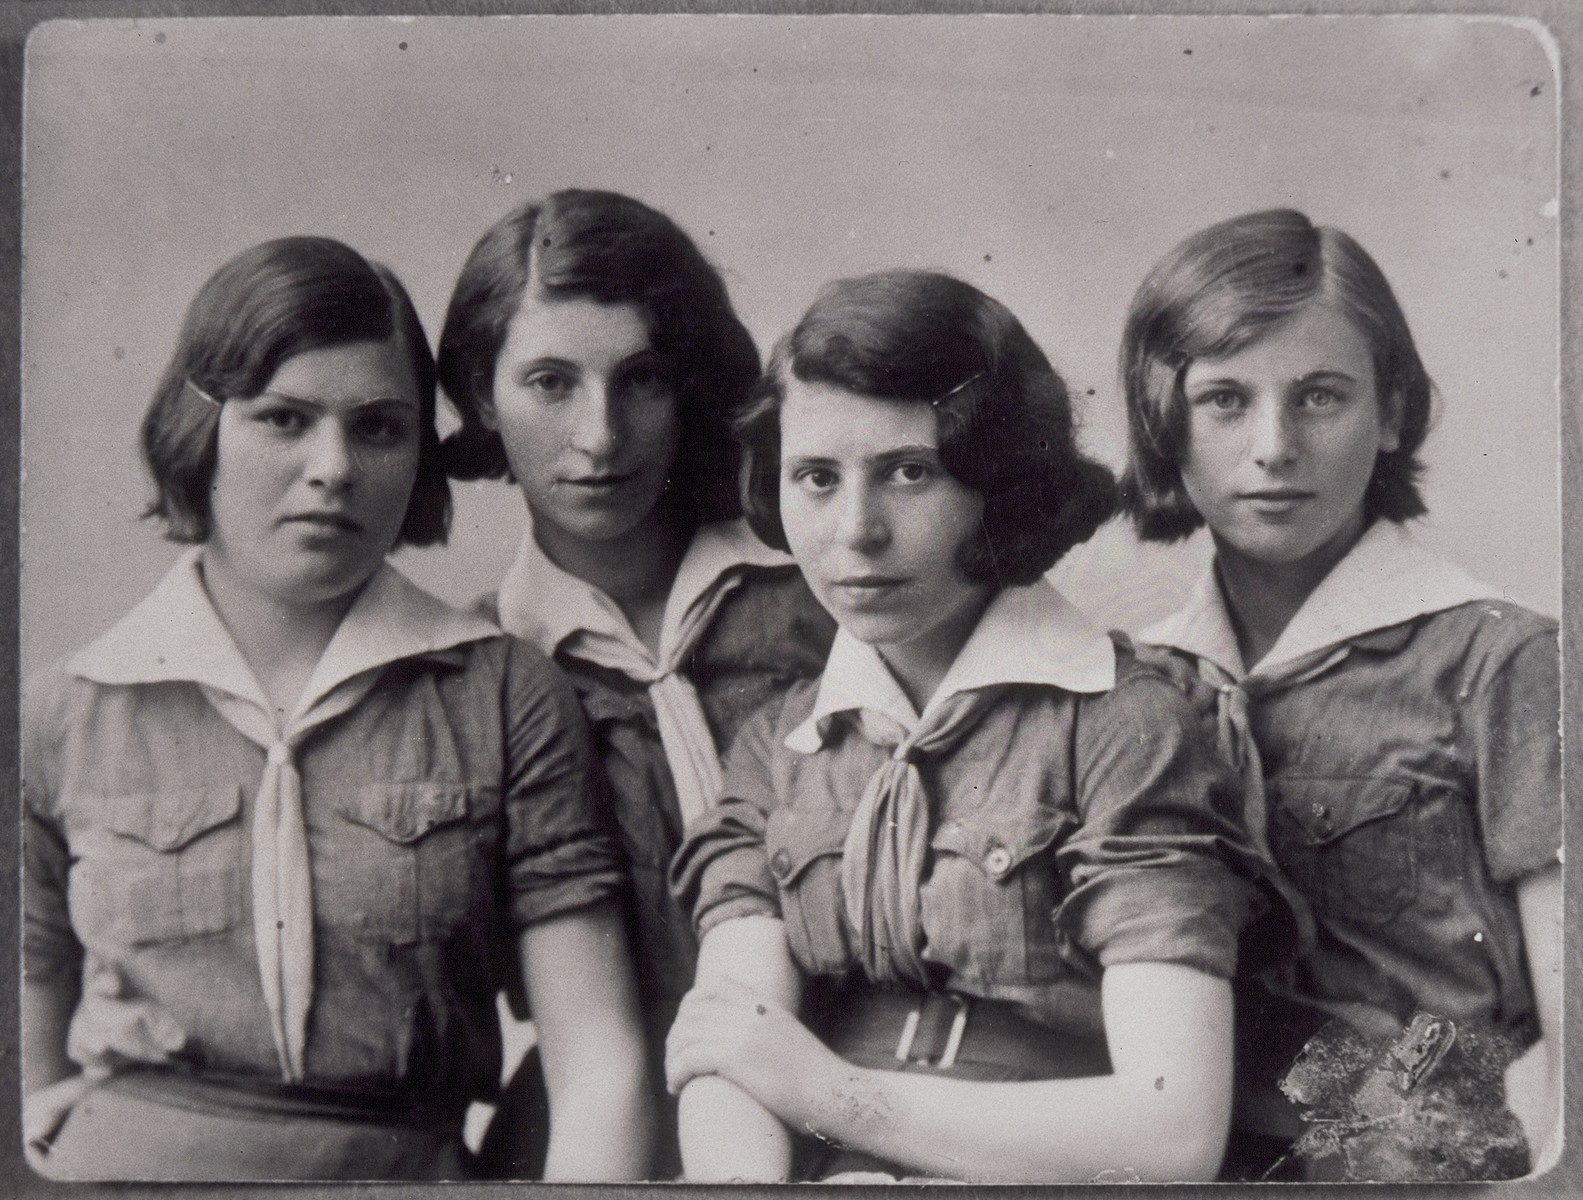 Four Jewish teenage girls who are members of the Hashomer Hatzair Zionist youth movement in Eisiskes, pose in their uniforms.  Pictured from right to left are: Breine Plotnik, Sara Ginunski, name unknown and Mikhele Plotnik.  All were killed by Germans during the September 1941 mass shooting action in Eisiskes.